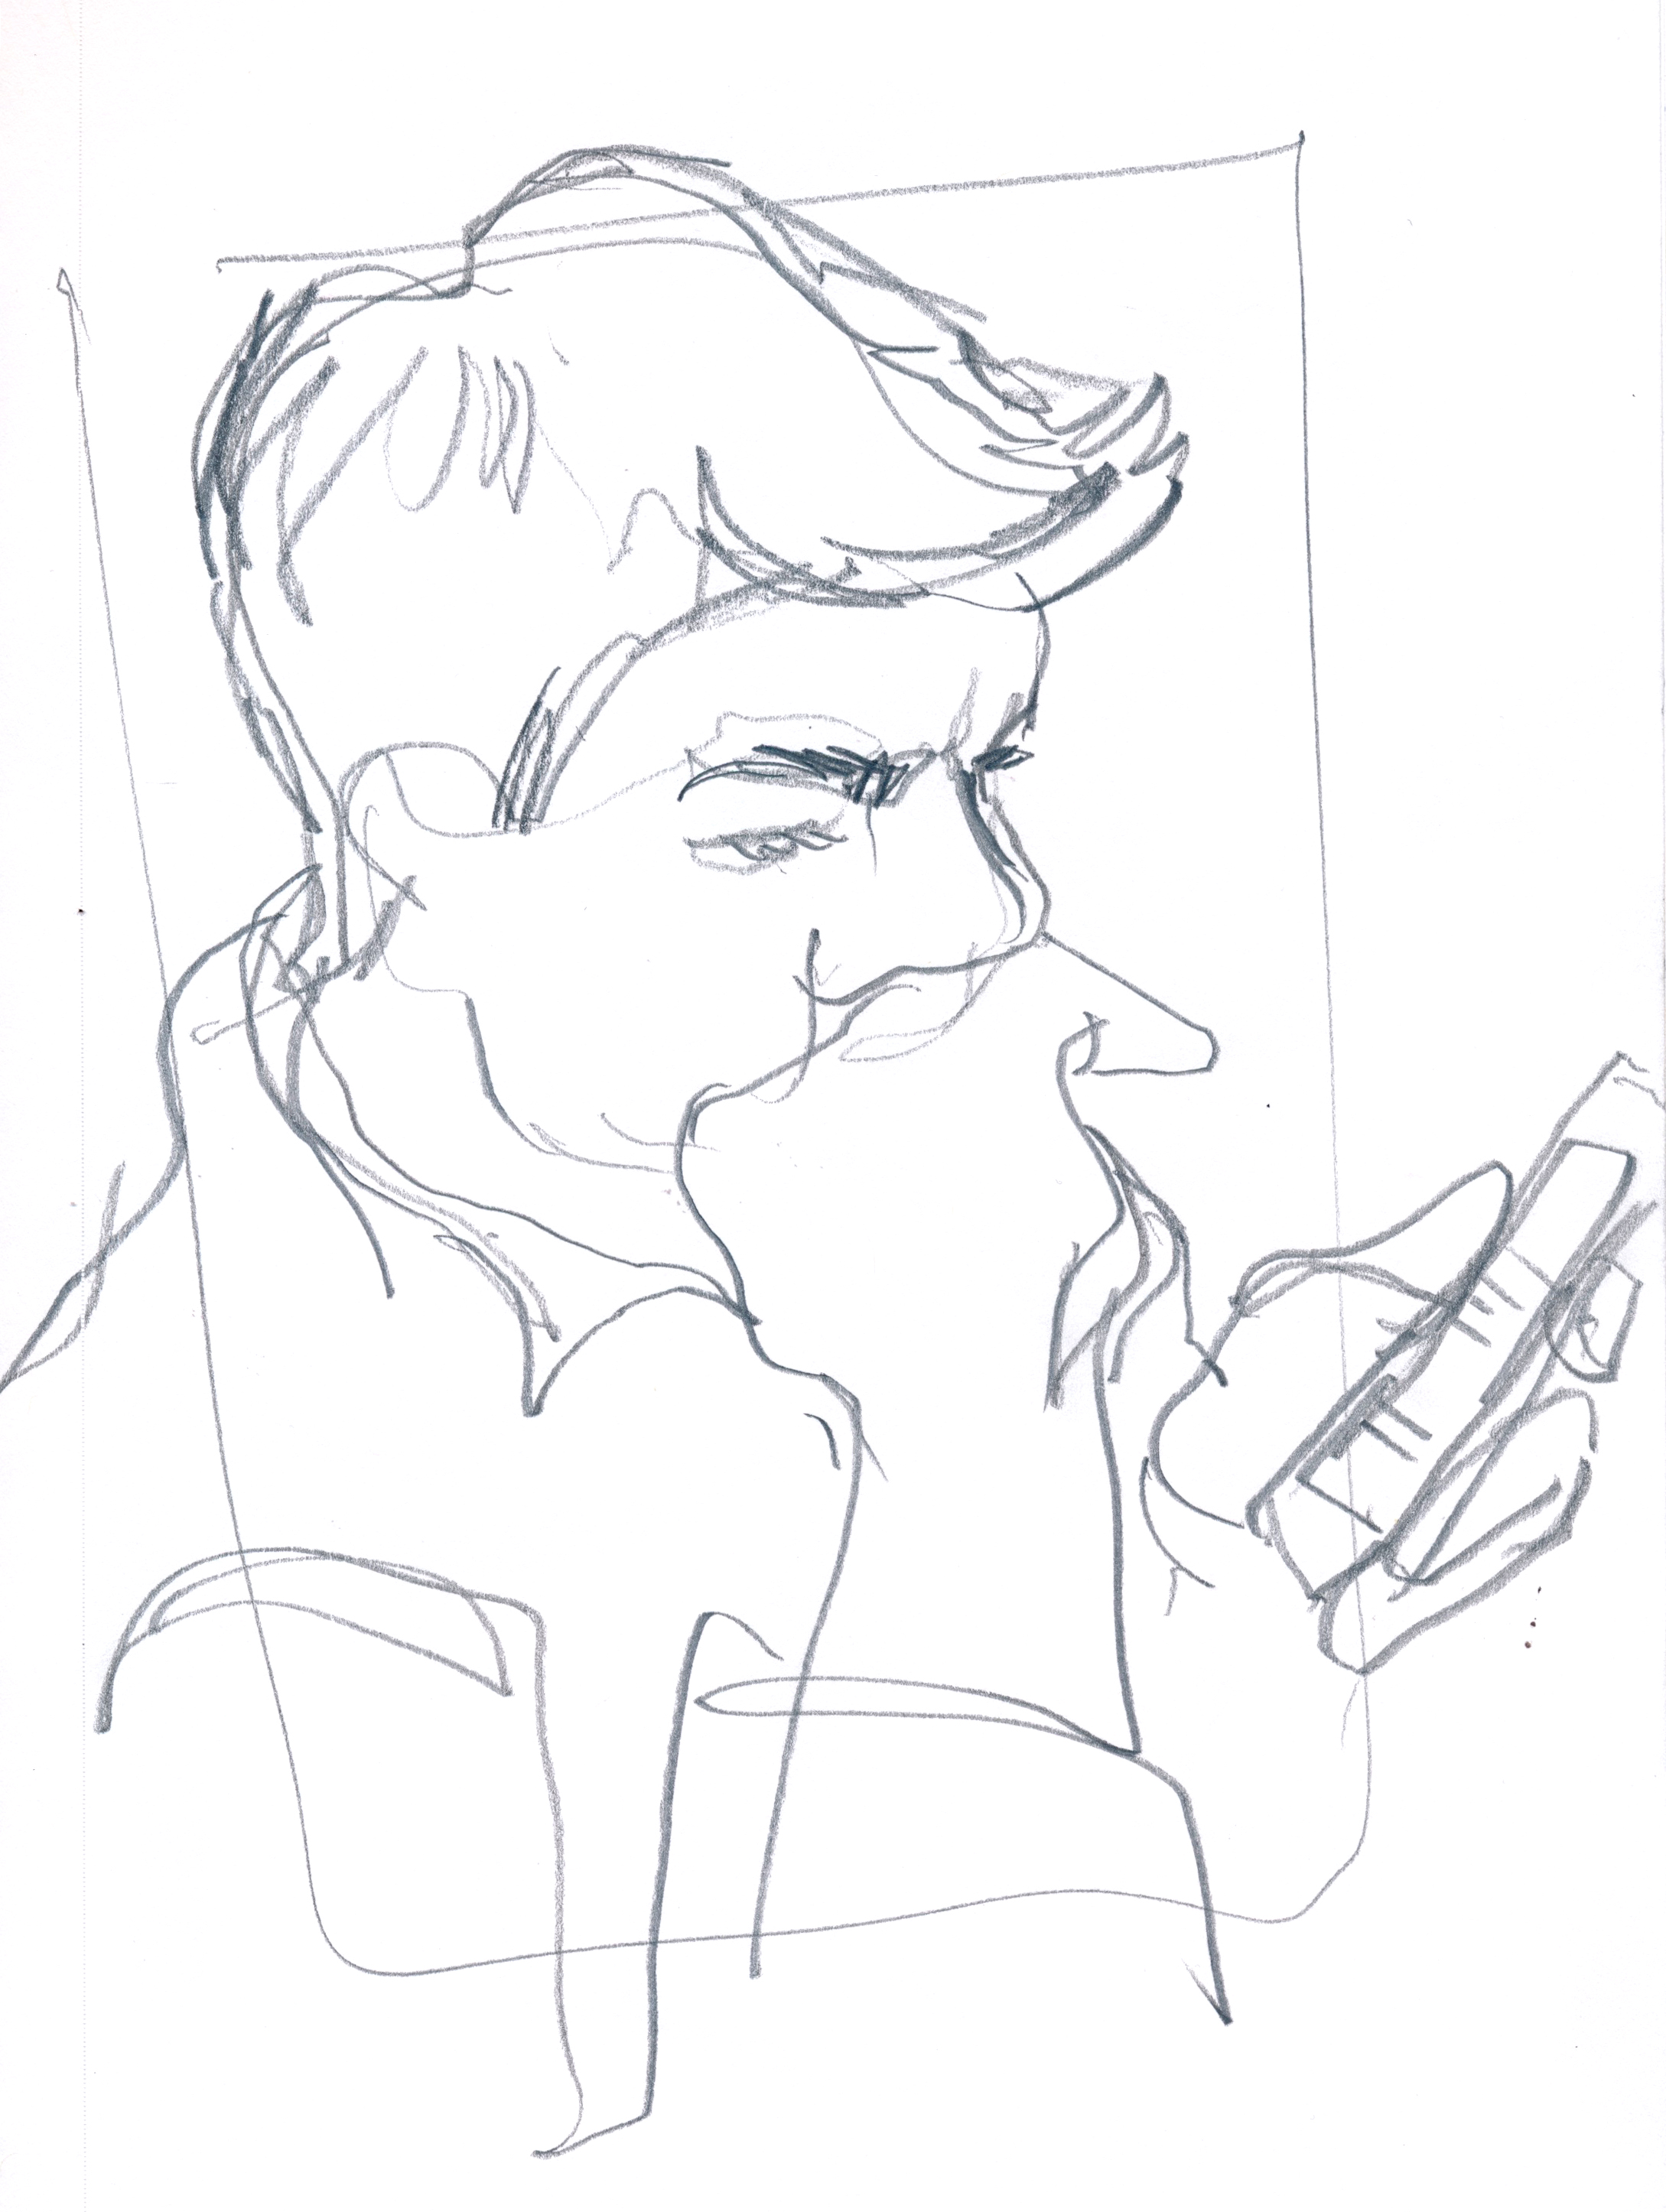 Grey reading the NY Times on his phone while I take too long to finish my lunch because of drawing everyone © Carly Larsson 2015